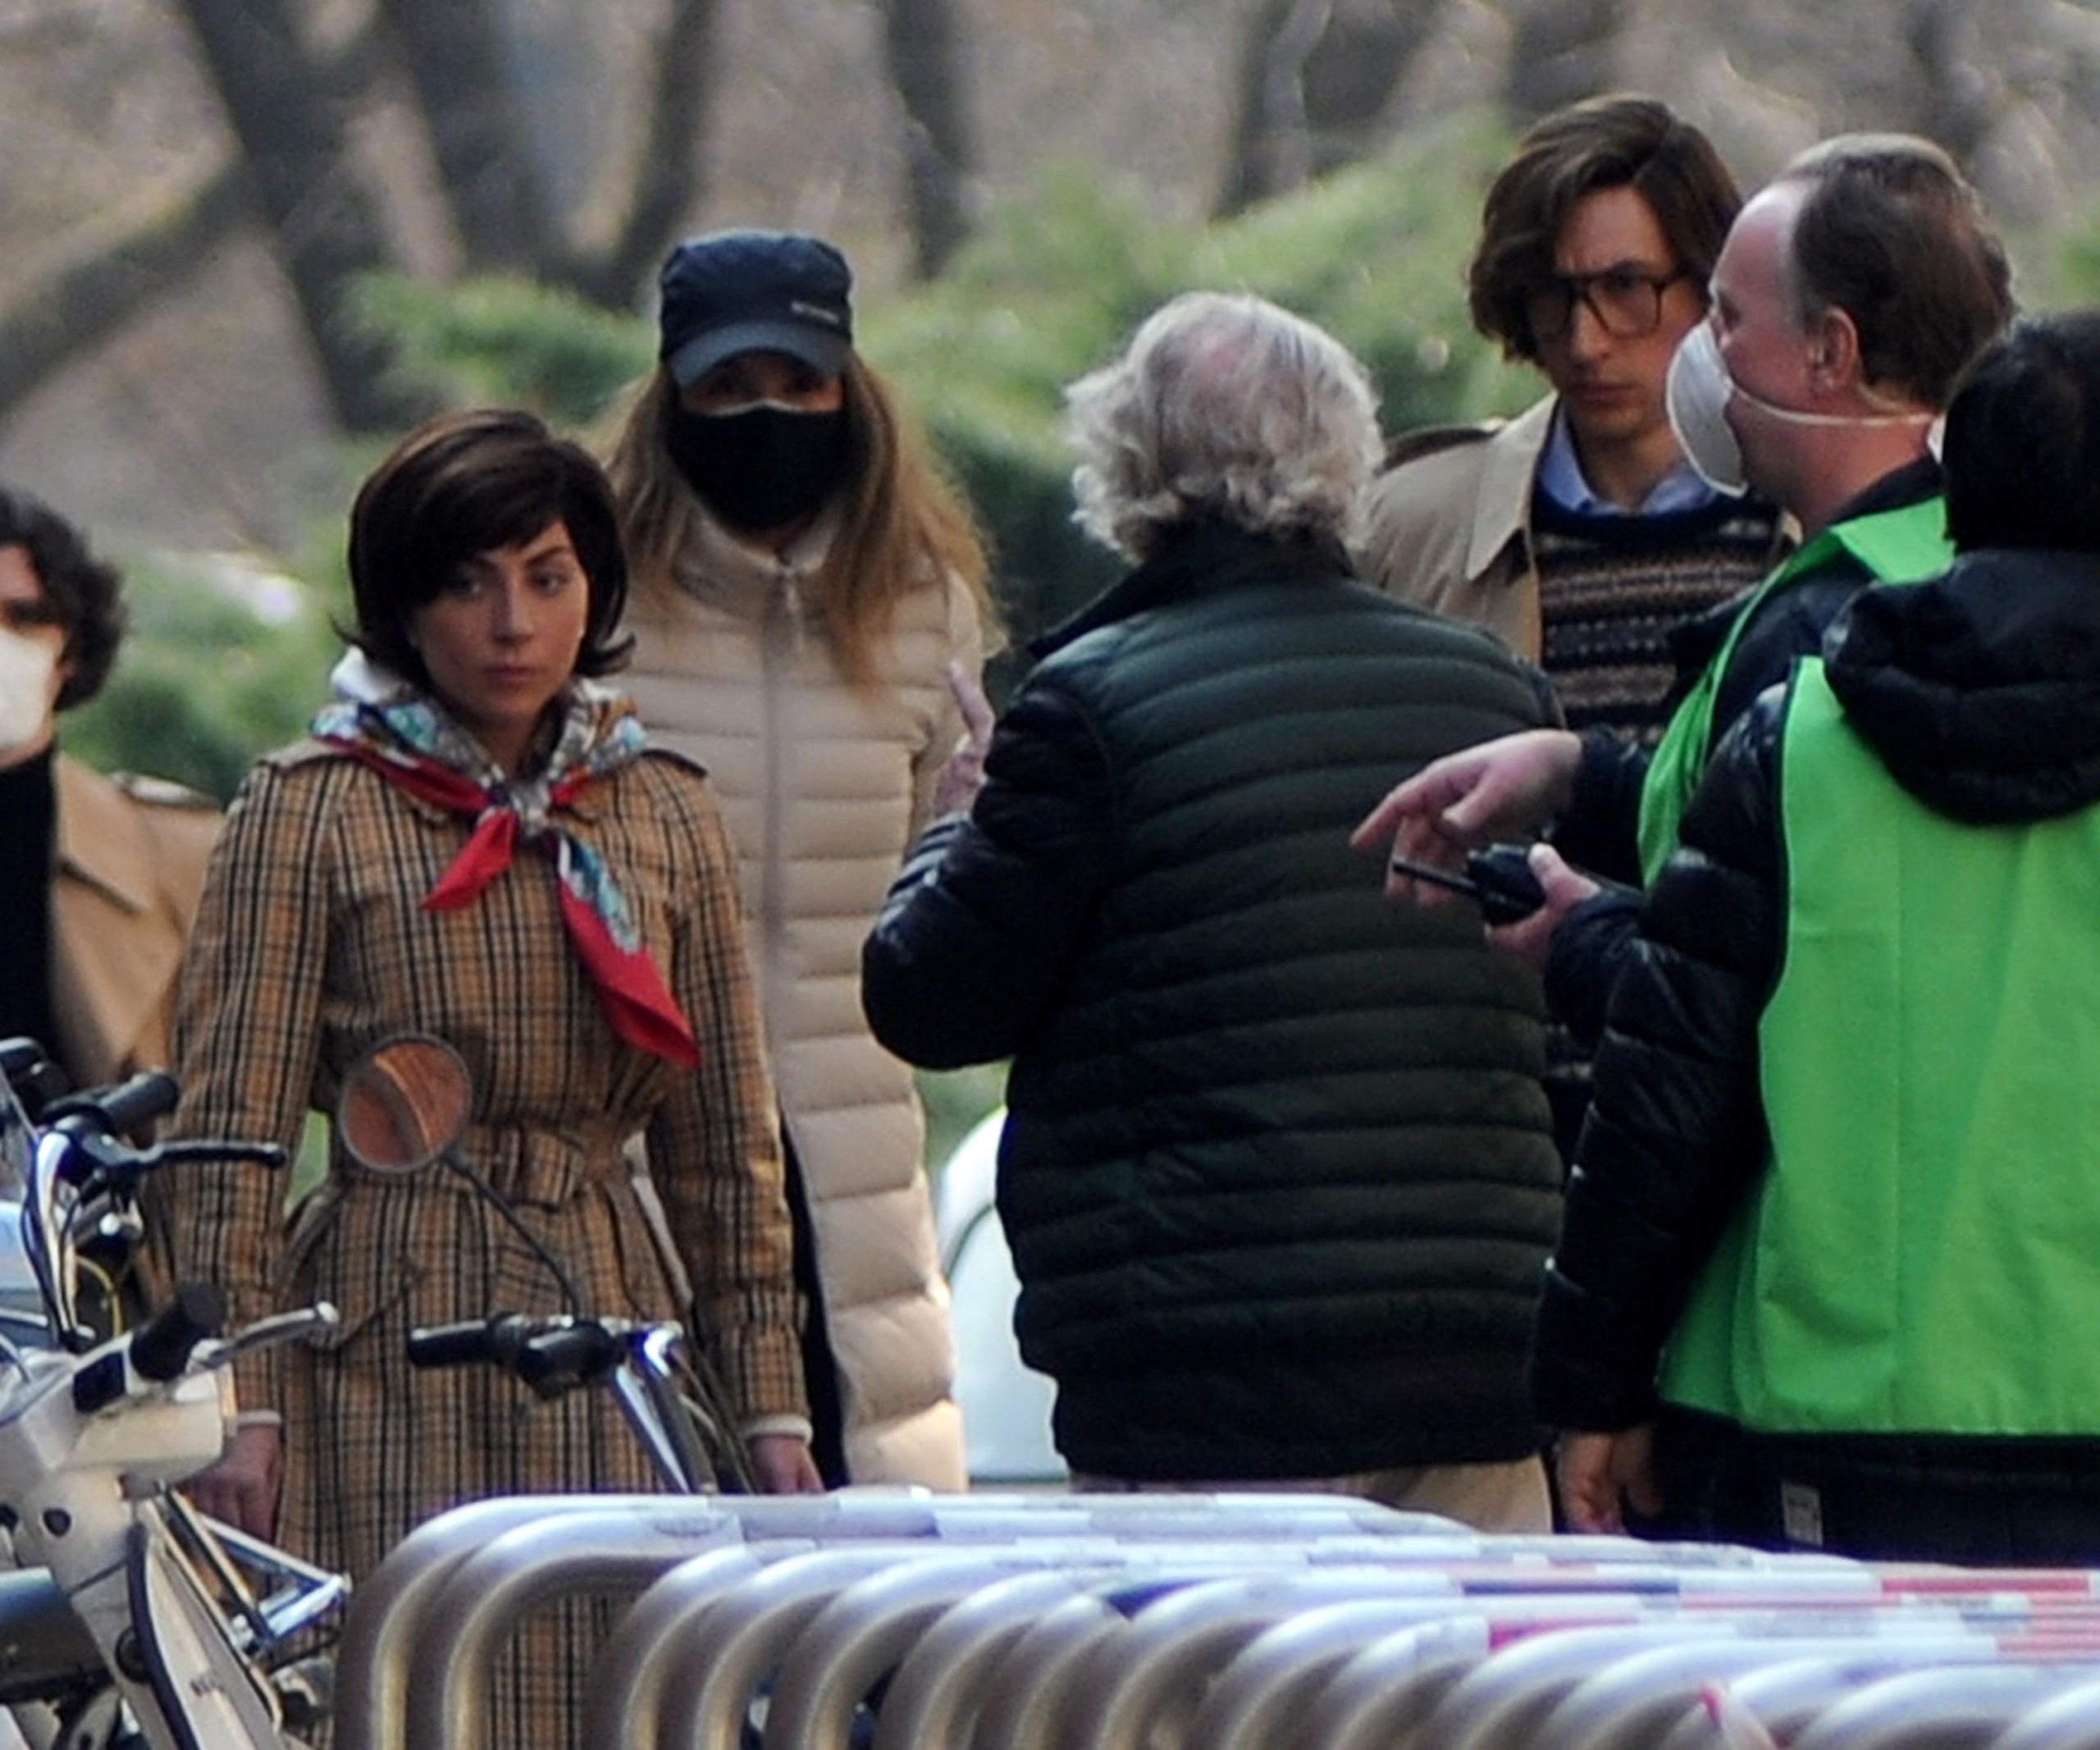 Pictured: Lady Gaga,Adam Driver Picture by: Mimmo Carriero/IPA / SplashNews.com